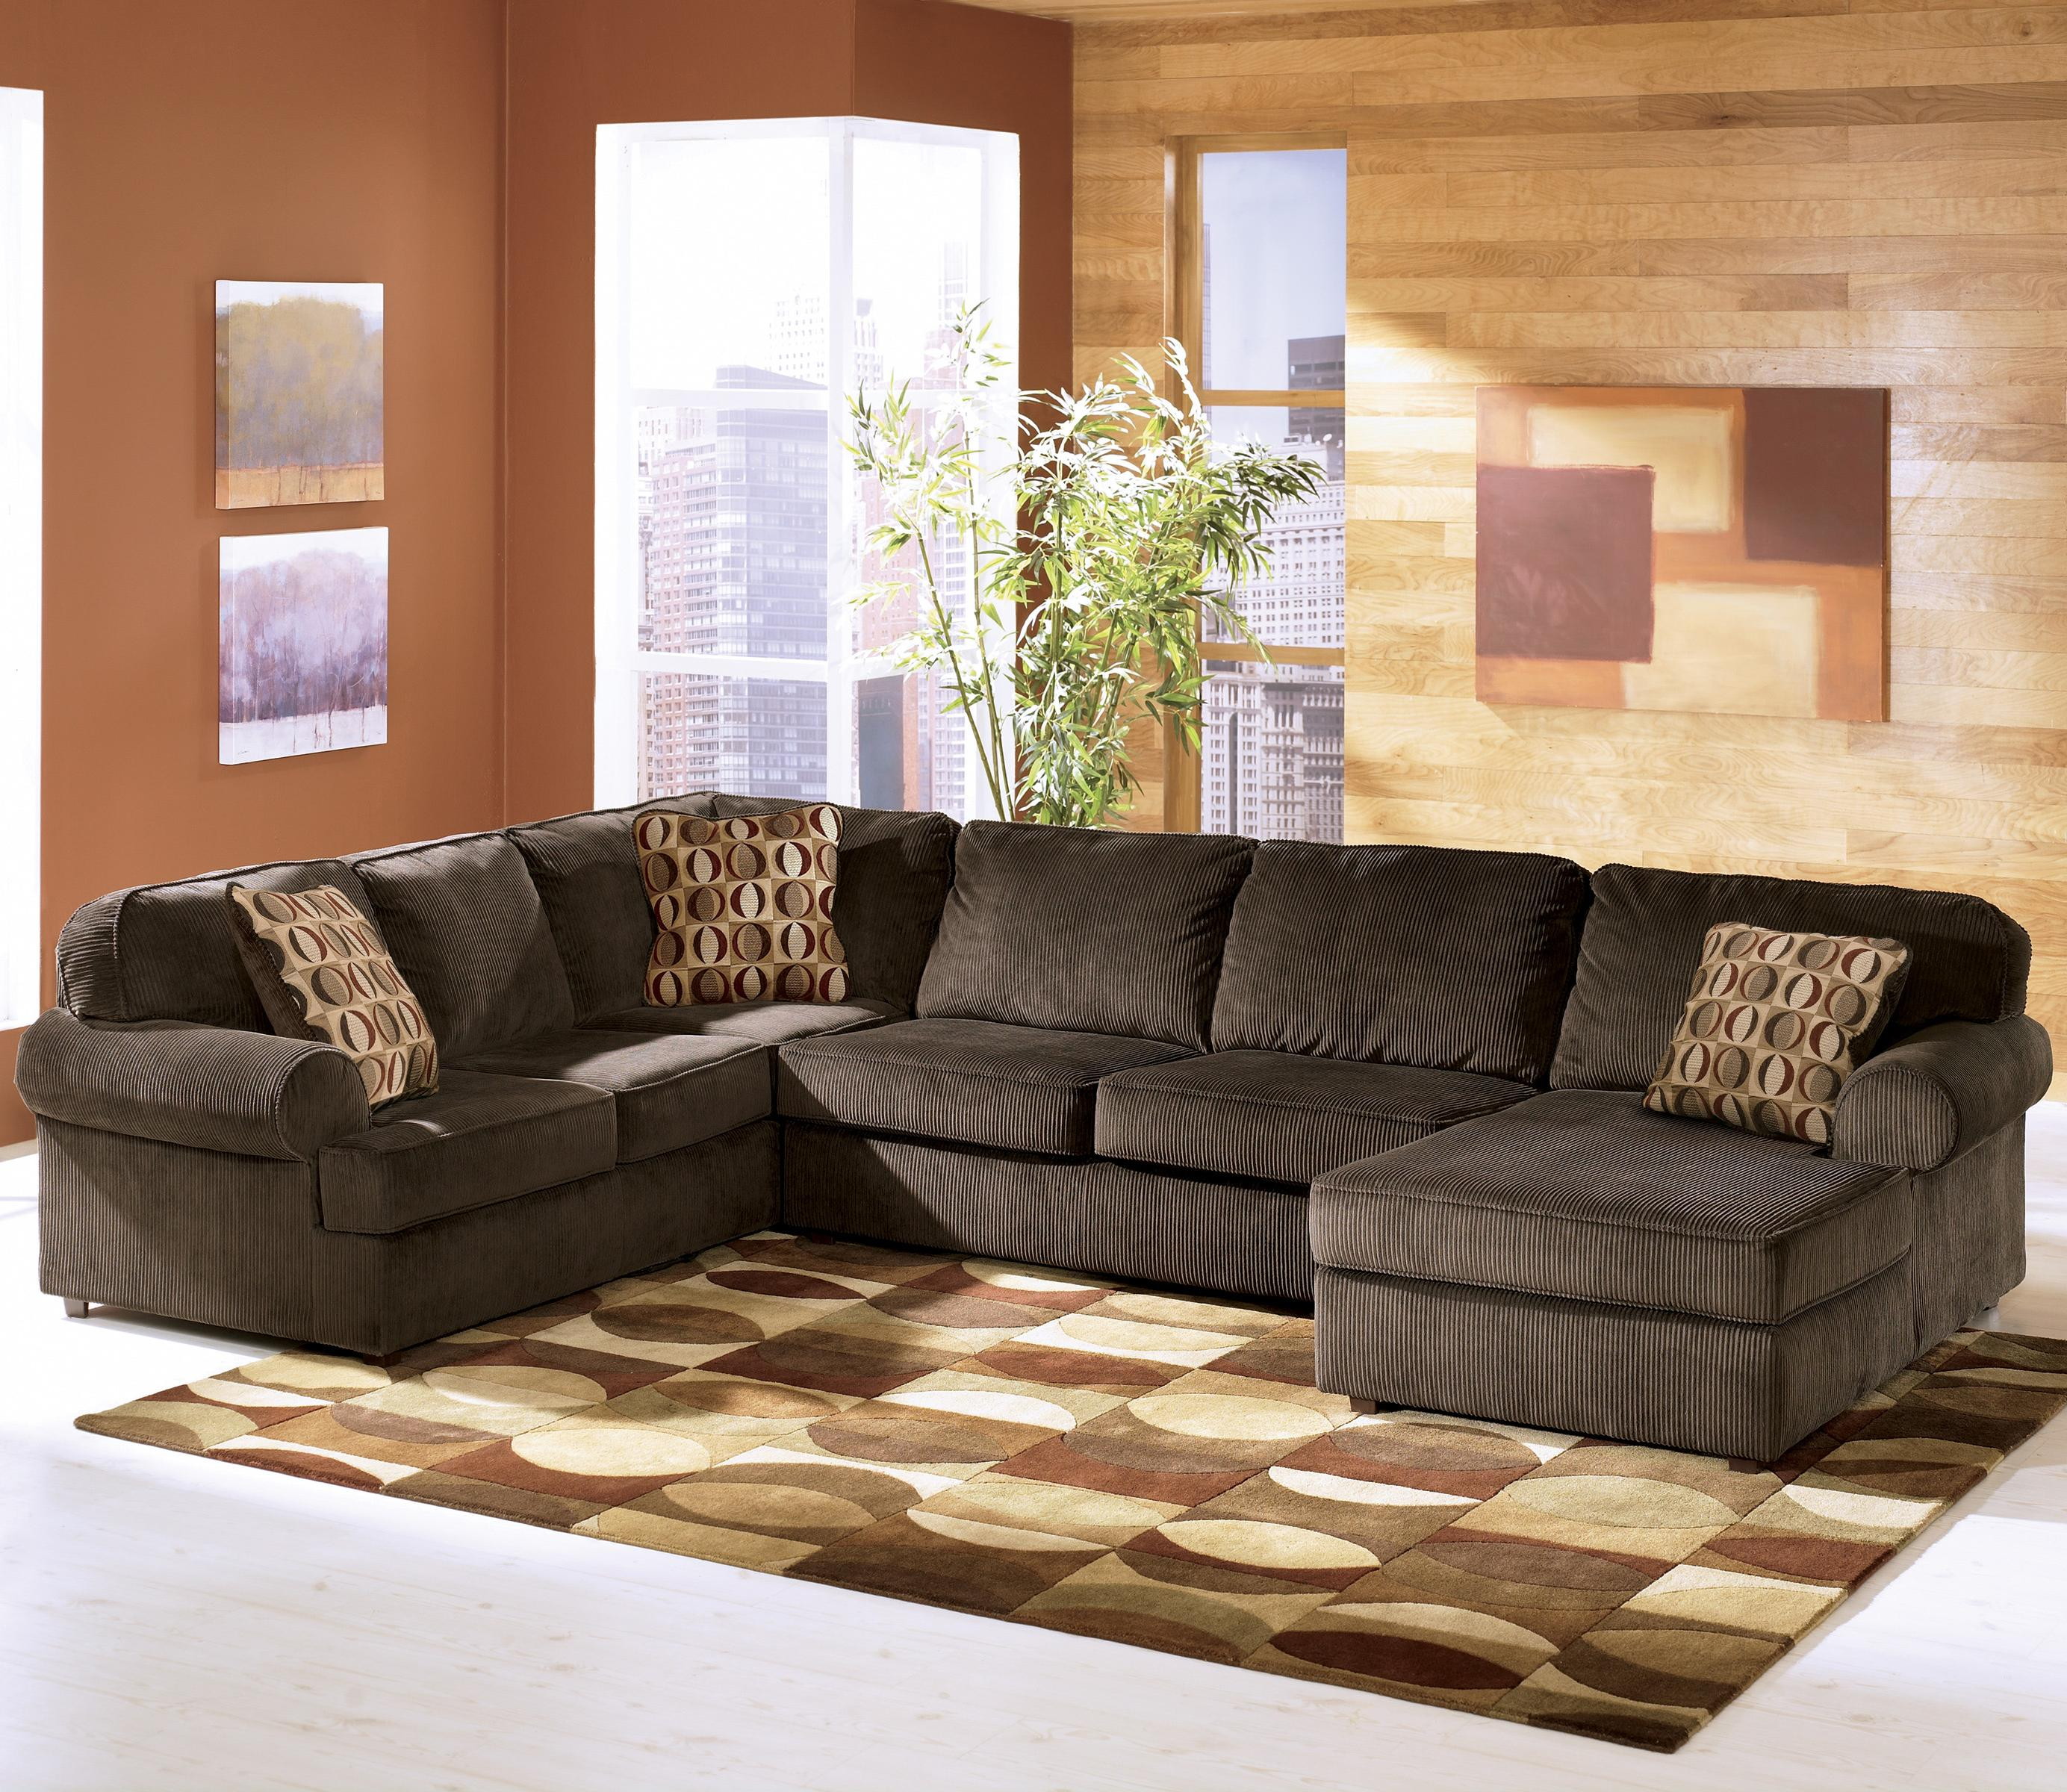 Ashley Furniture Vista - Chocolate Casual 3-Piece Sectional with Right Chaise - e-hoopla demo - Sofa Sectional : 3 piece sectional sofa with chaise - Sectionals, Sofas & Couches